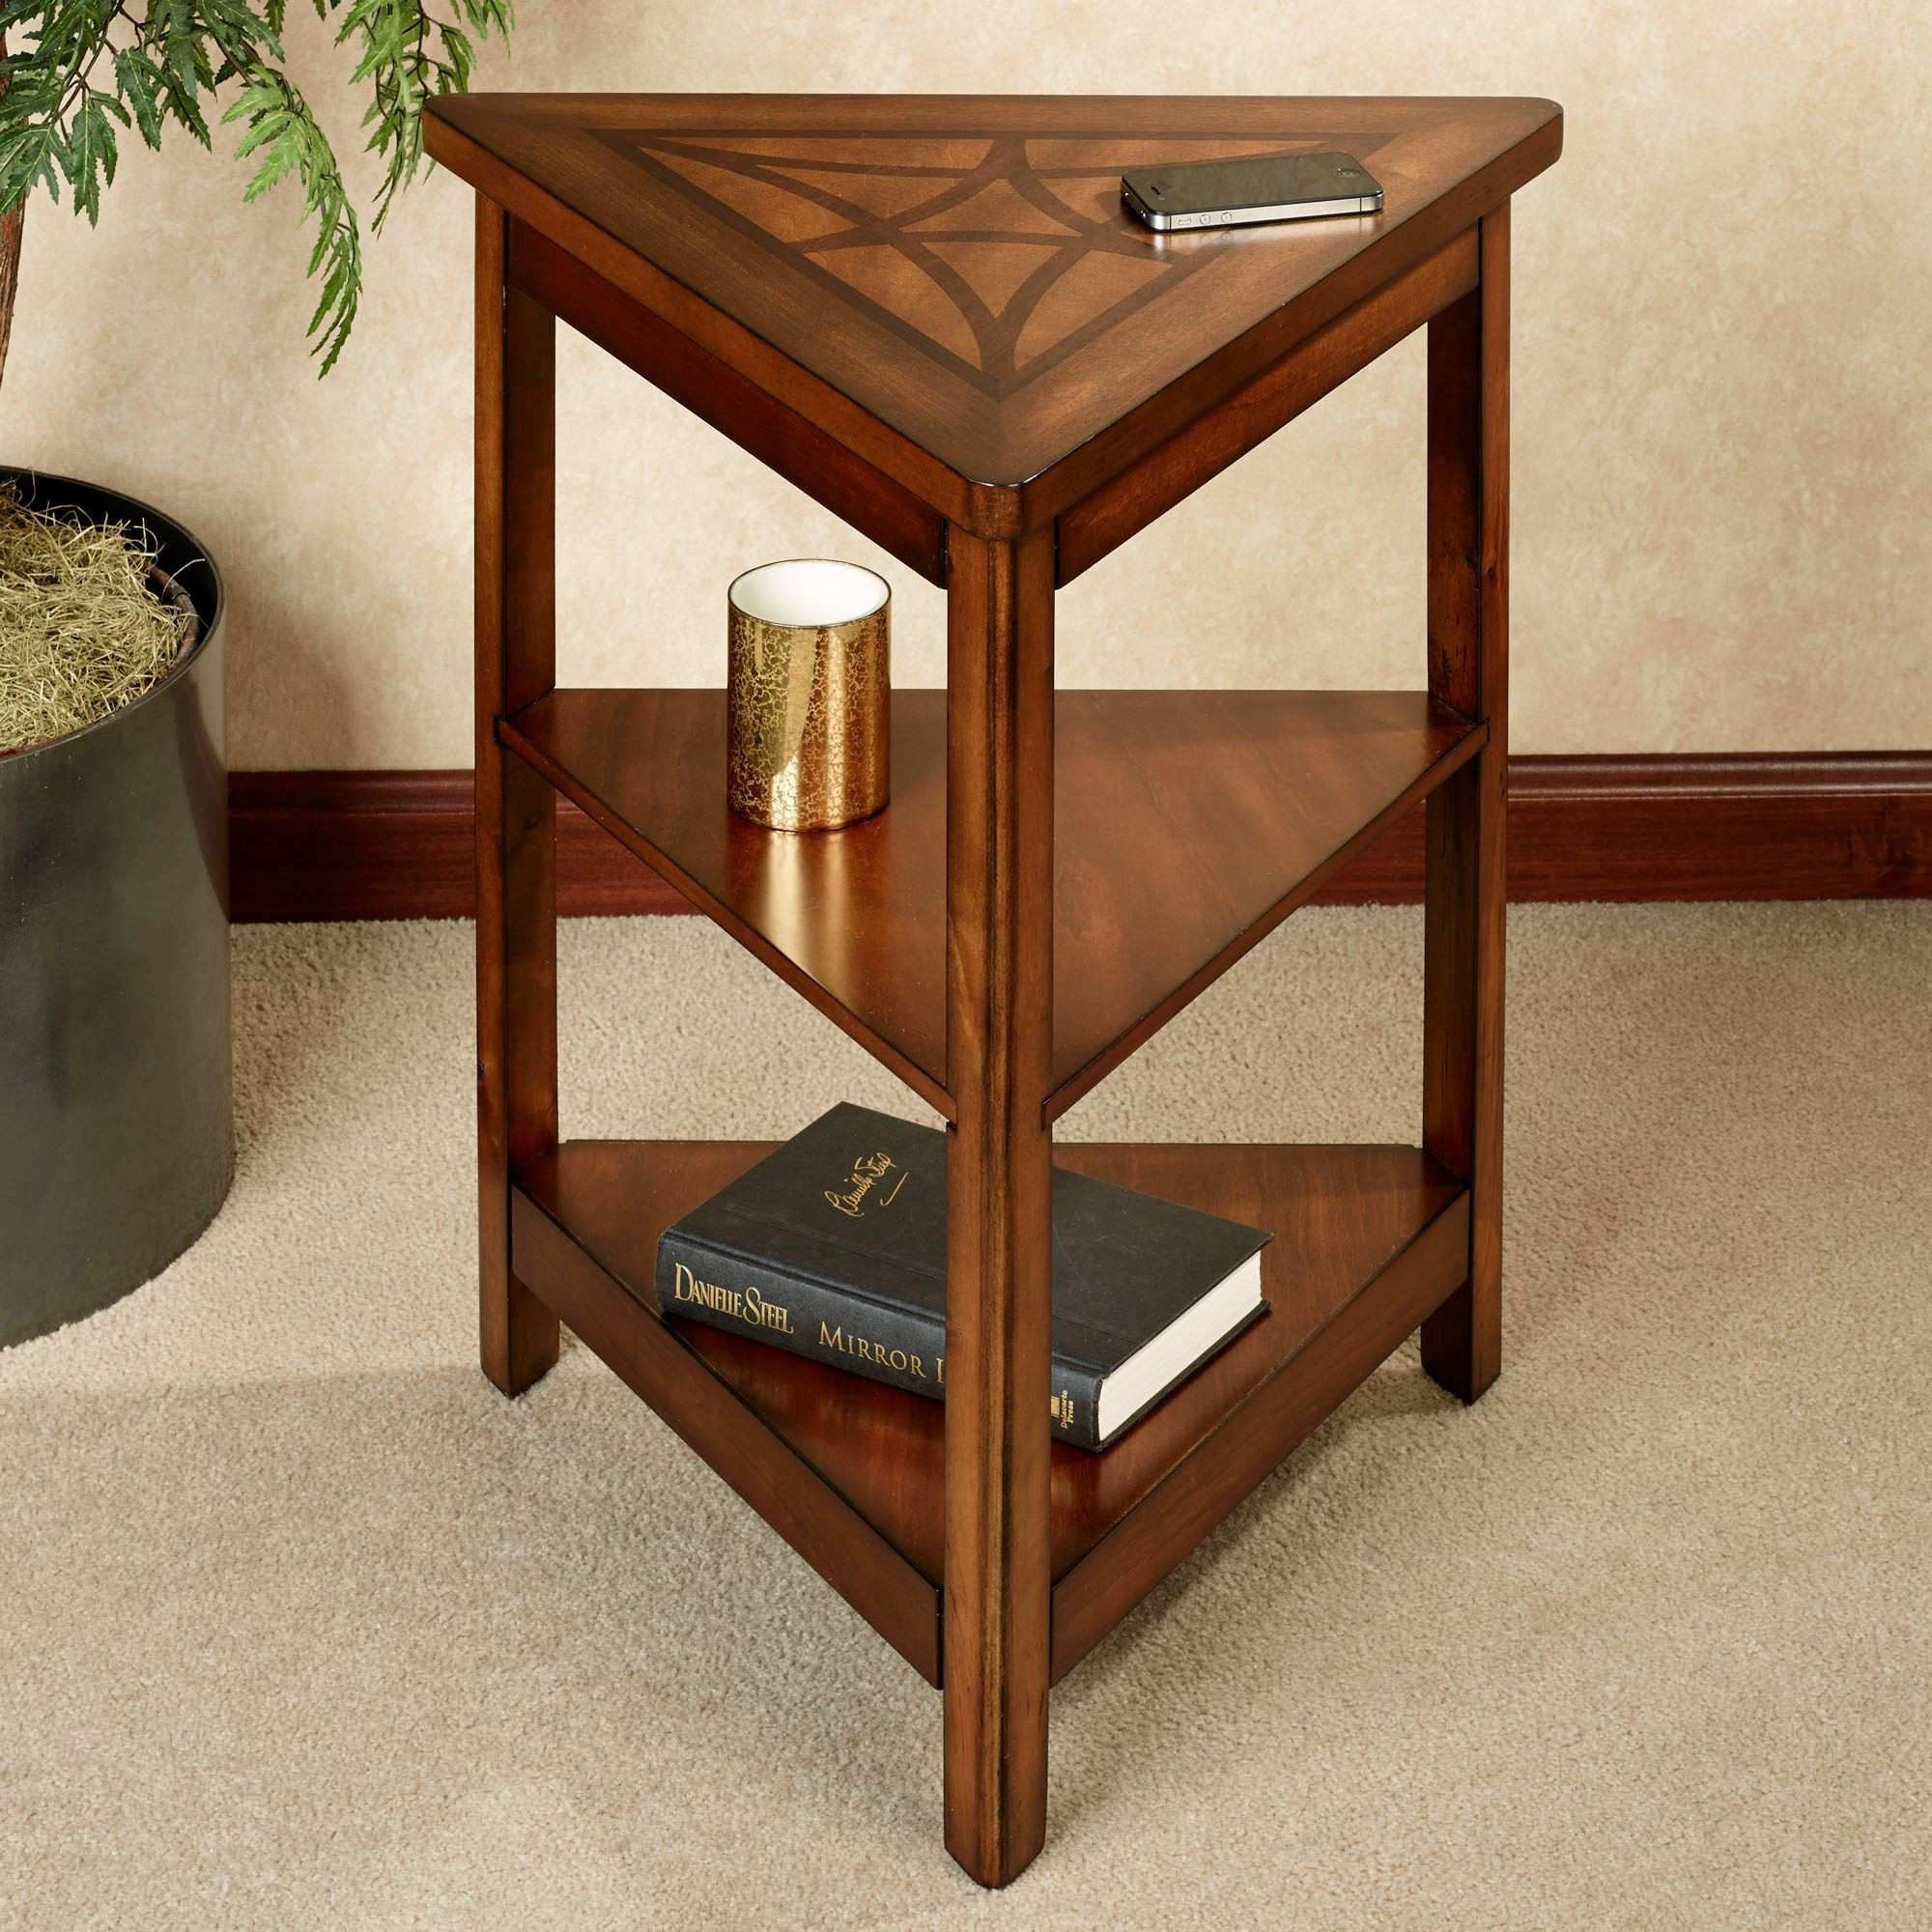 best gallery small corner accent table ideas lovely for alluring decor home chrome console mahogany nightstand rustic trunk coffee plain cloths clear lucite end tables square